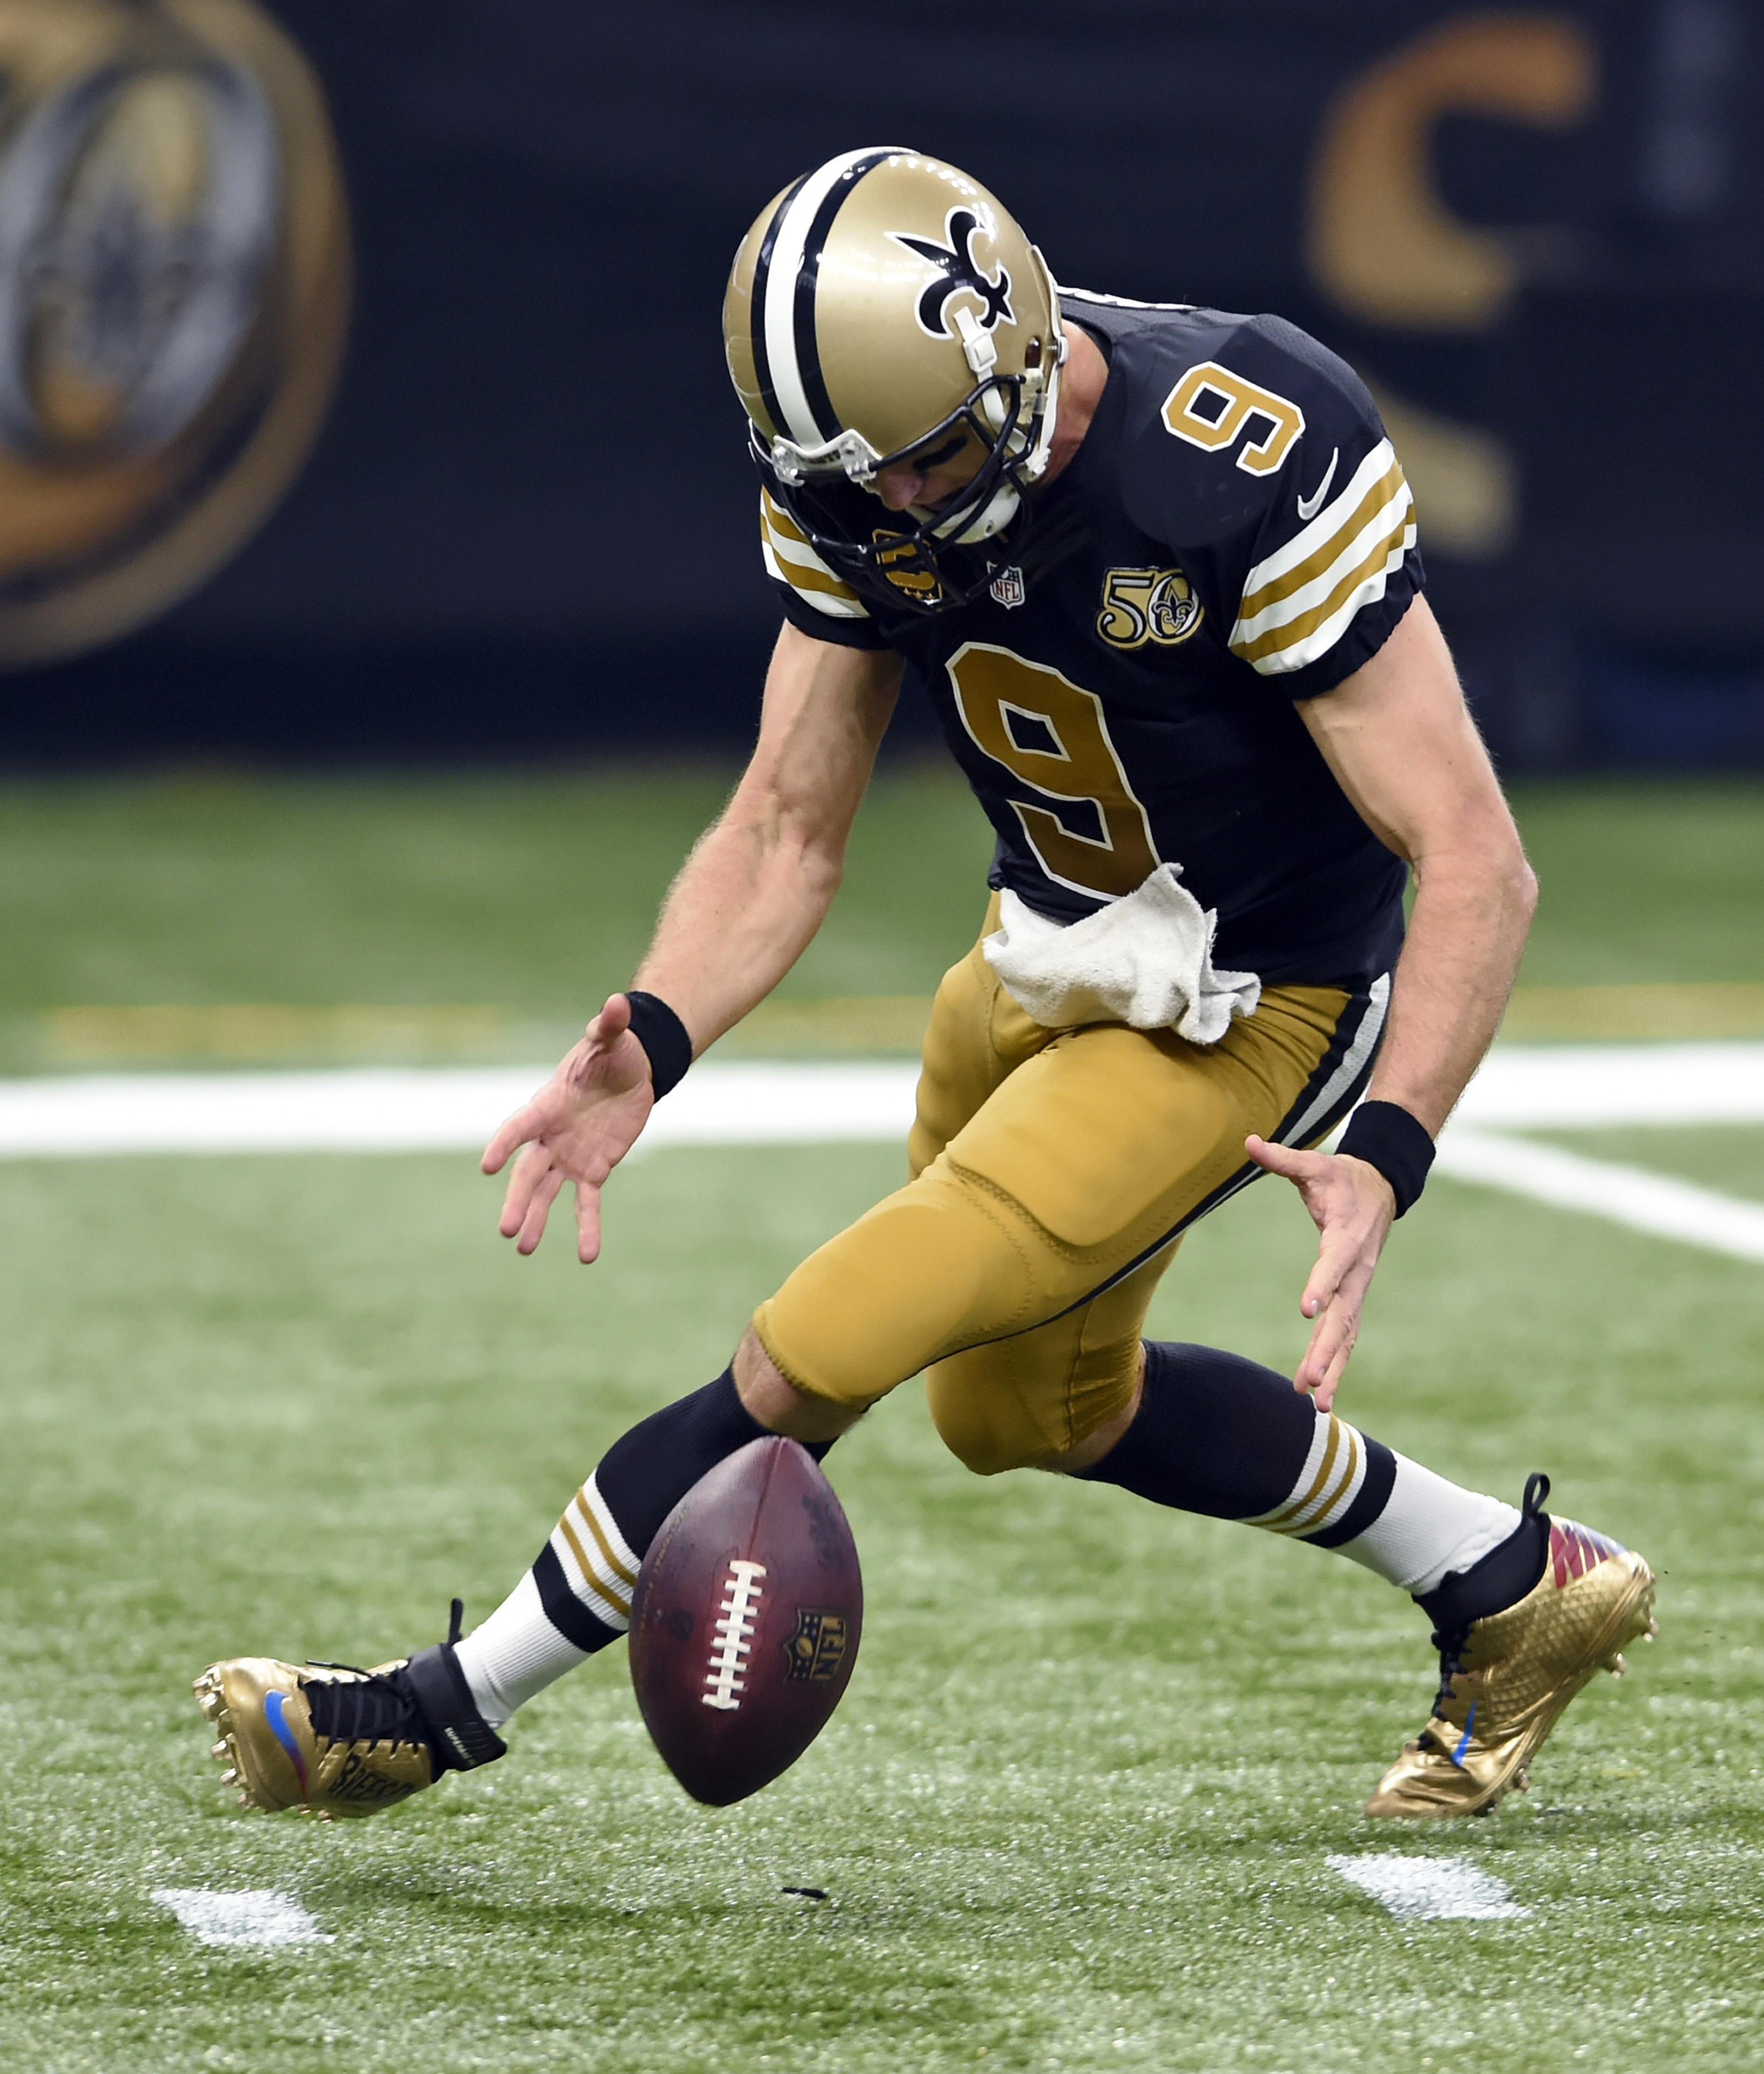 New Orleans Saints quarterback Drew Brees (9) chases down a bad snap in the first half of an NFL football game against the Detroit Lions in New Orleans, Sunday, Dec. 4, 2016. (AP Photo/Bill Feig)